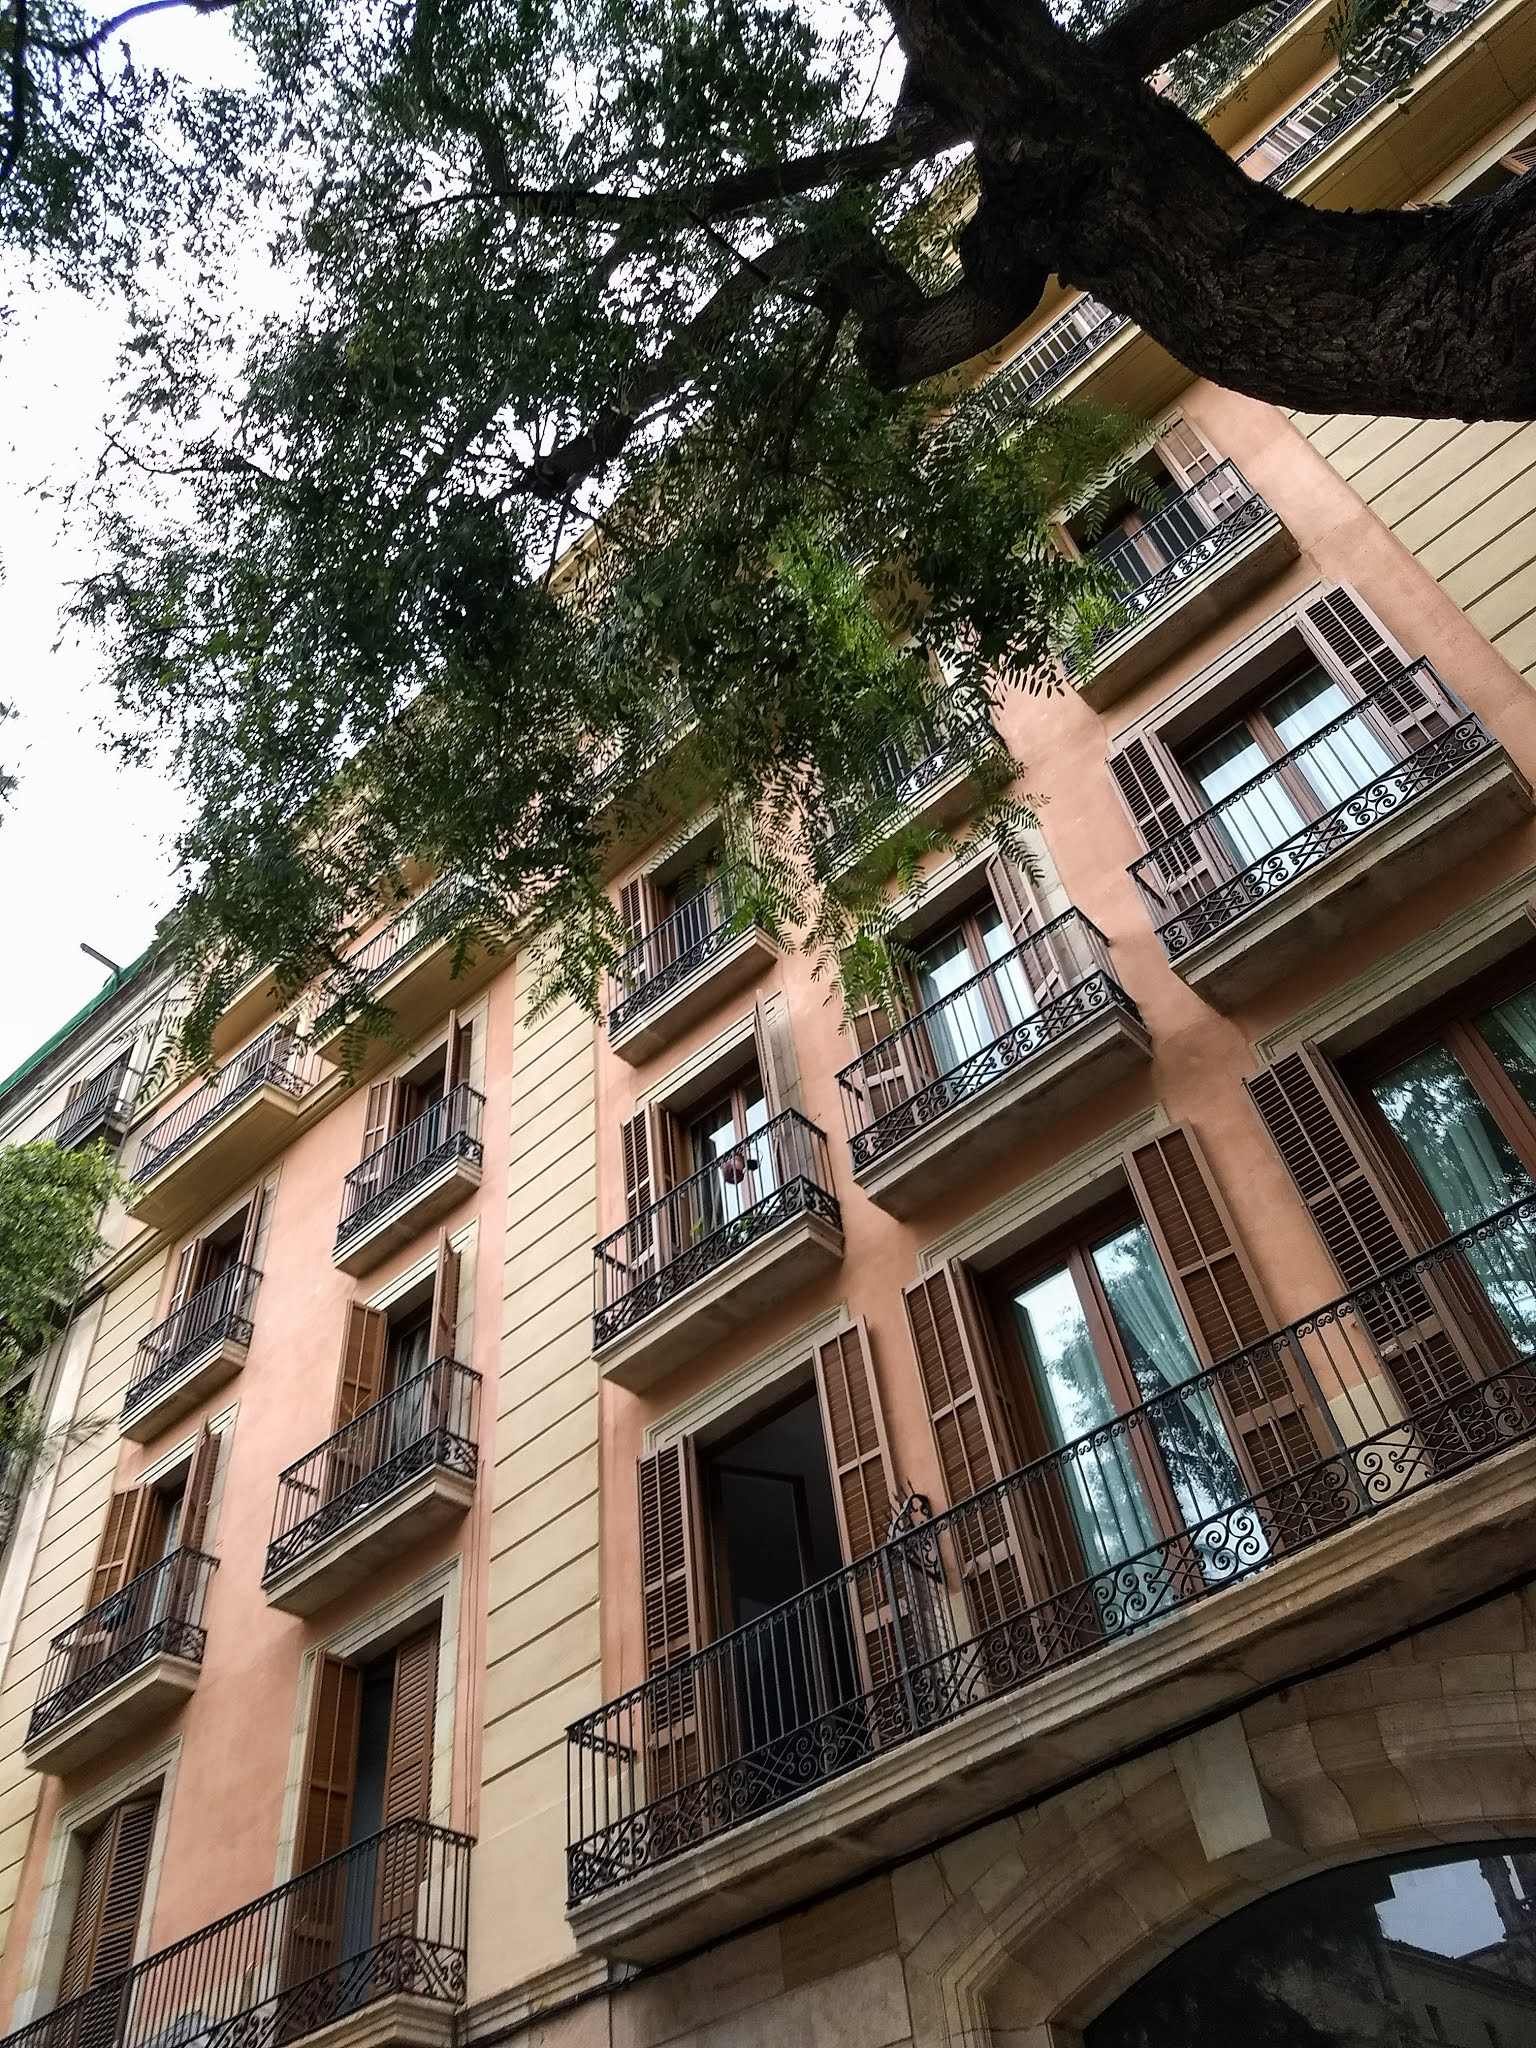 Looking up at a building under a tree on the Rambla de Catalunya in Barcelona.